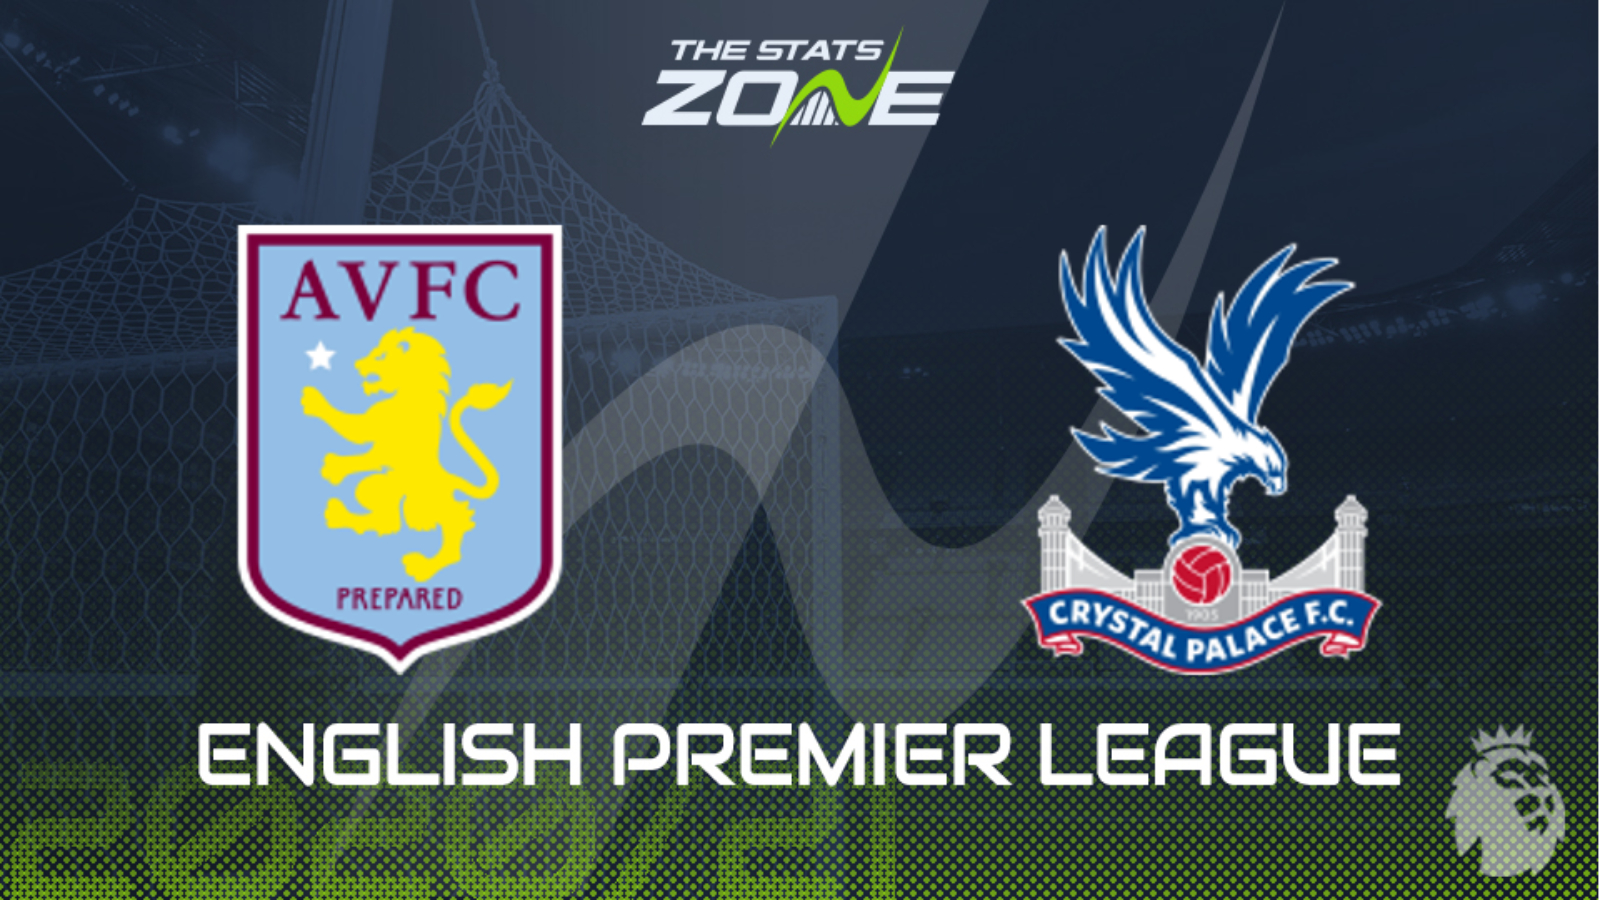 Crystal palace vs aston villa betting tips most trusted binary options brokers